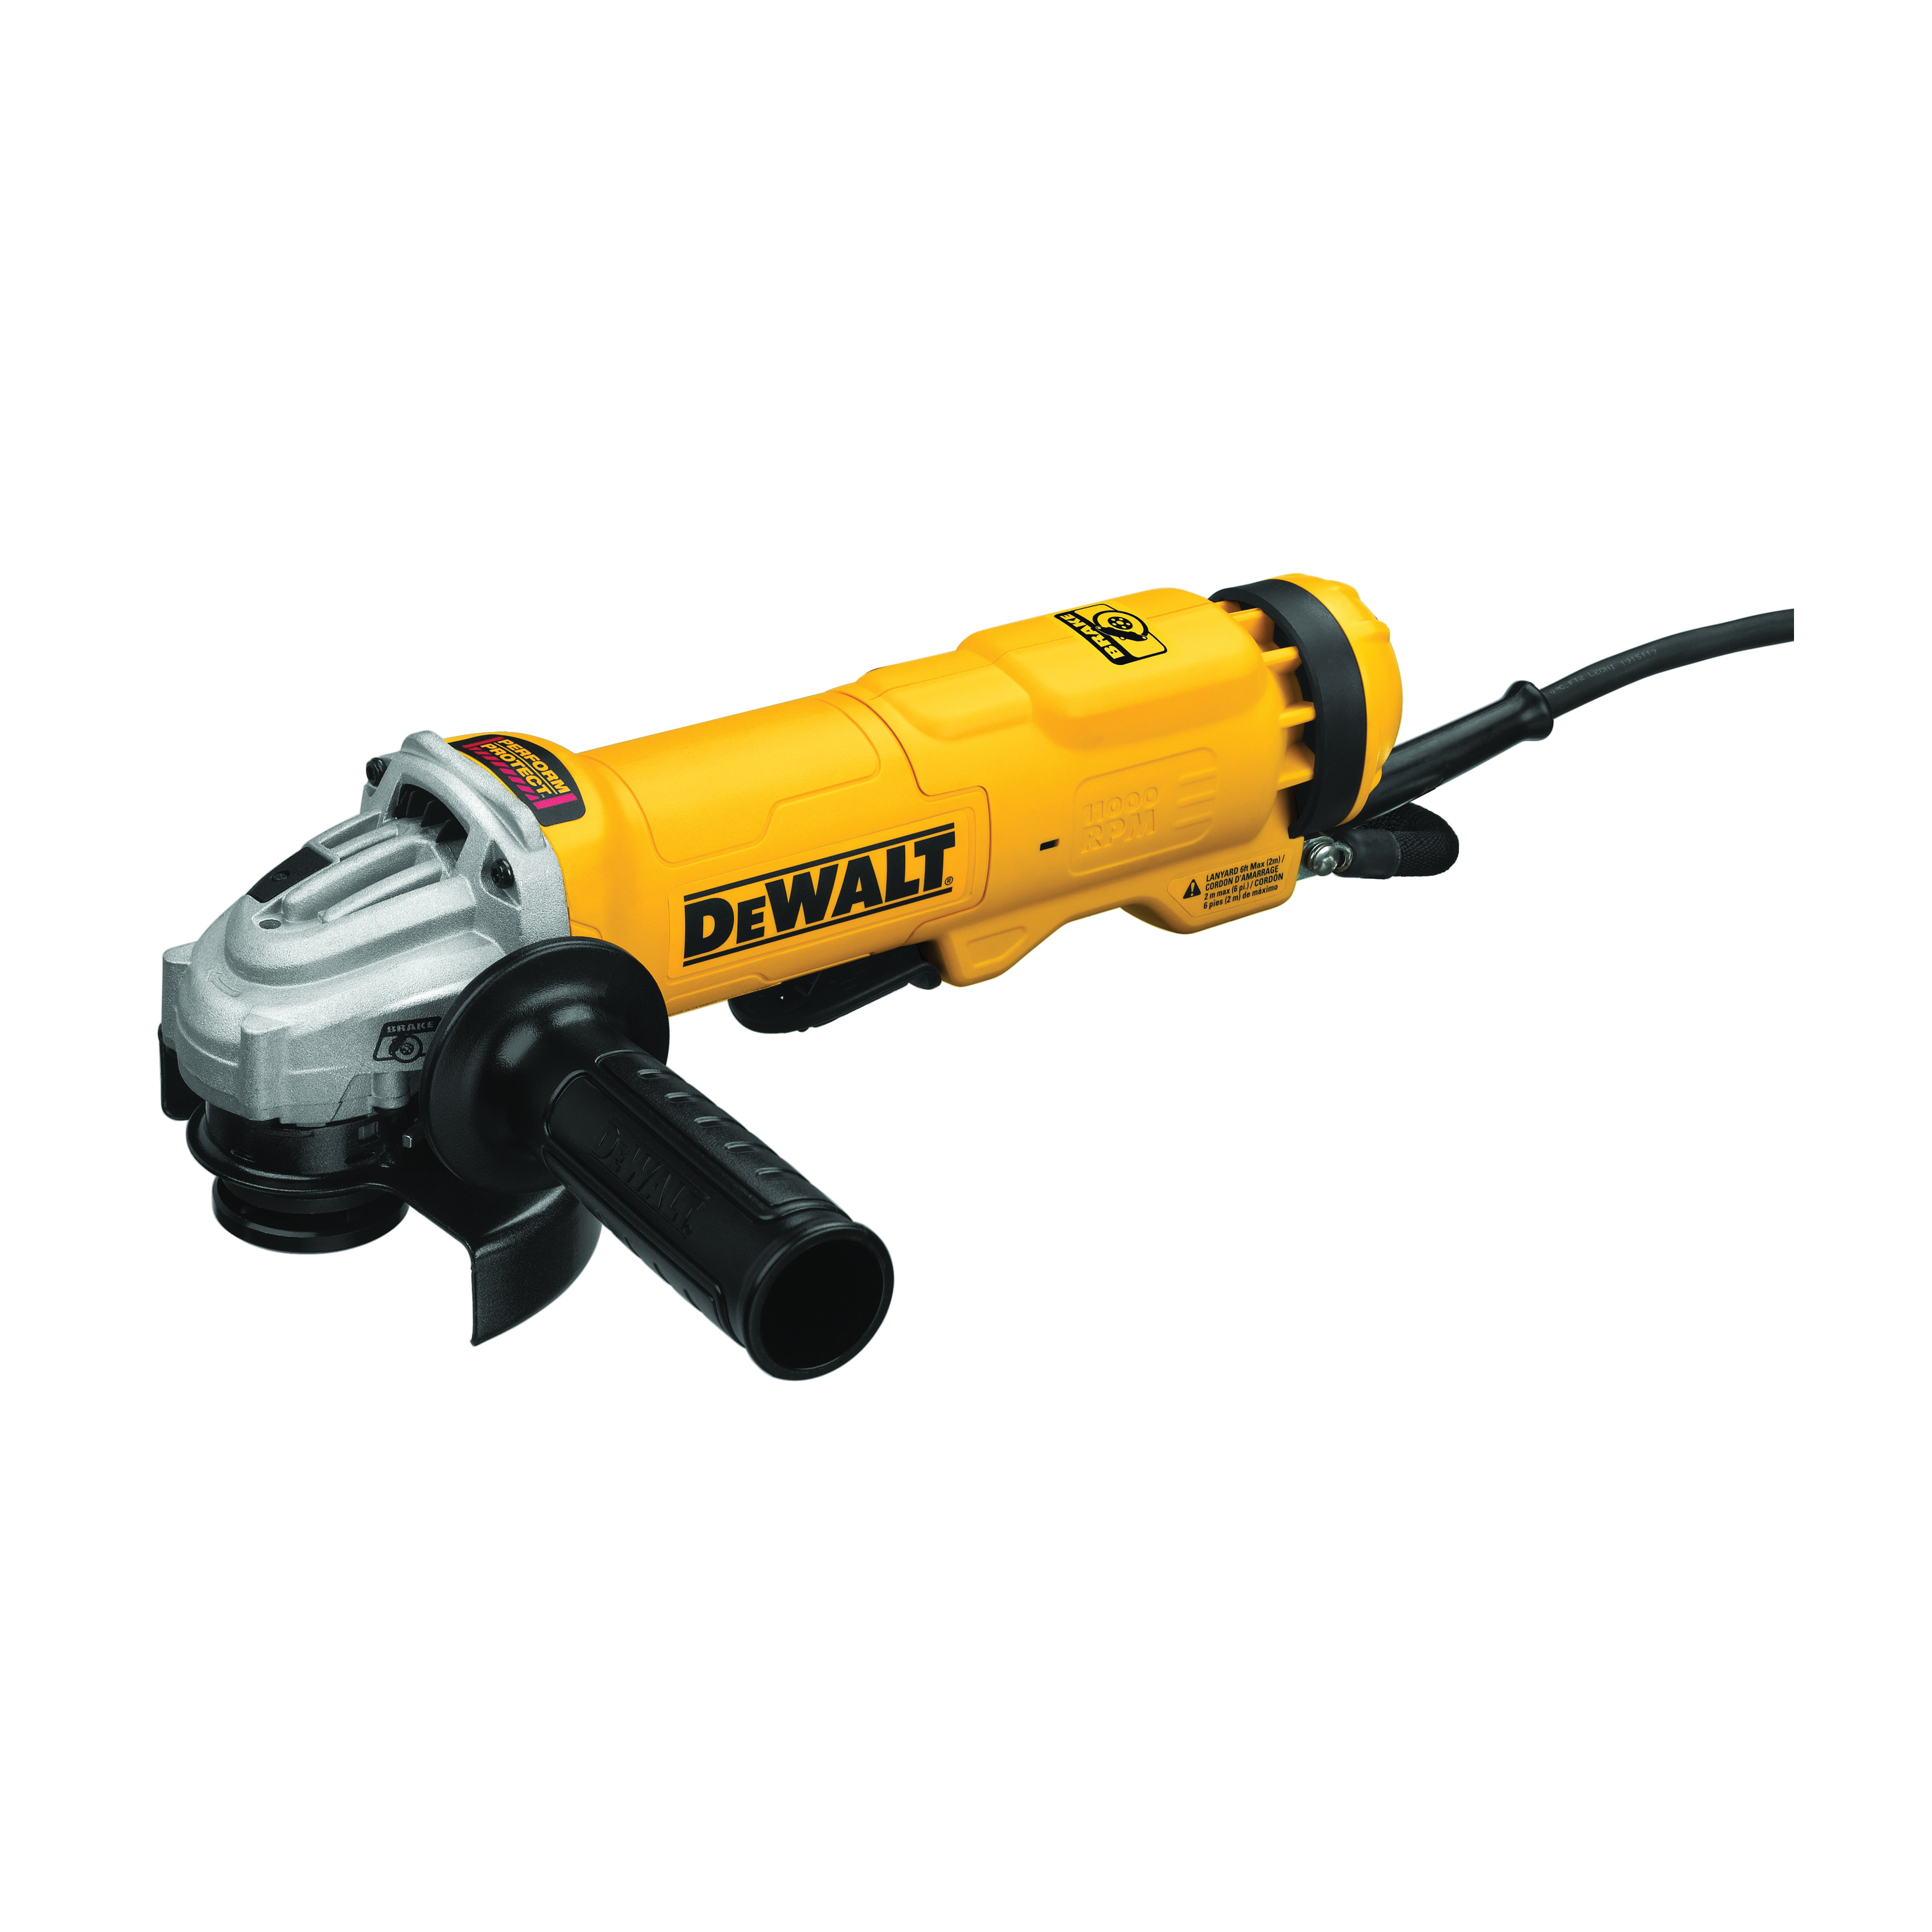 DeWALT® DWE4222N Heavy Duty Small Electric Angle Grinder With Brake and No-Lock On, 4-1/2 in Dia Wheel, 5/8-11 UNC Arbor/Shank, 120 VAC, Black/Yellow, Yes, Non-Locking Paddle Switch